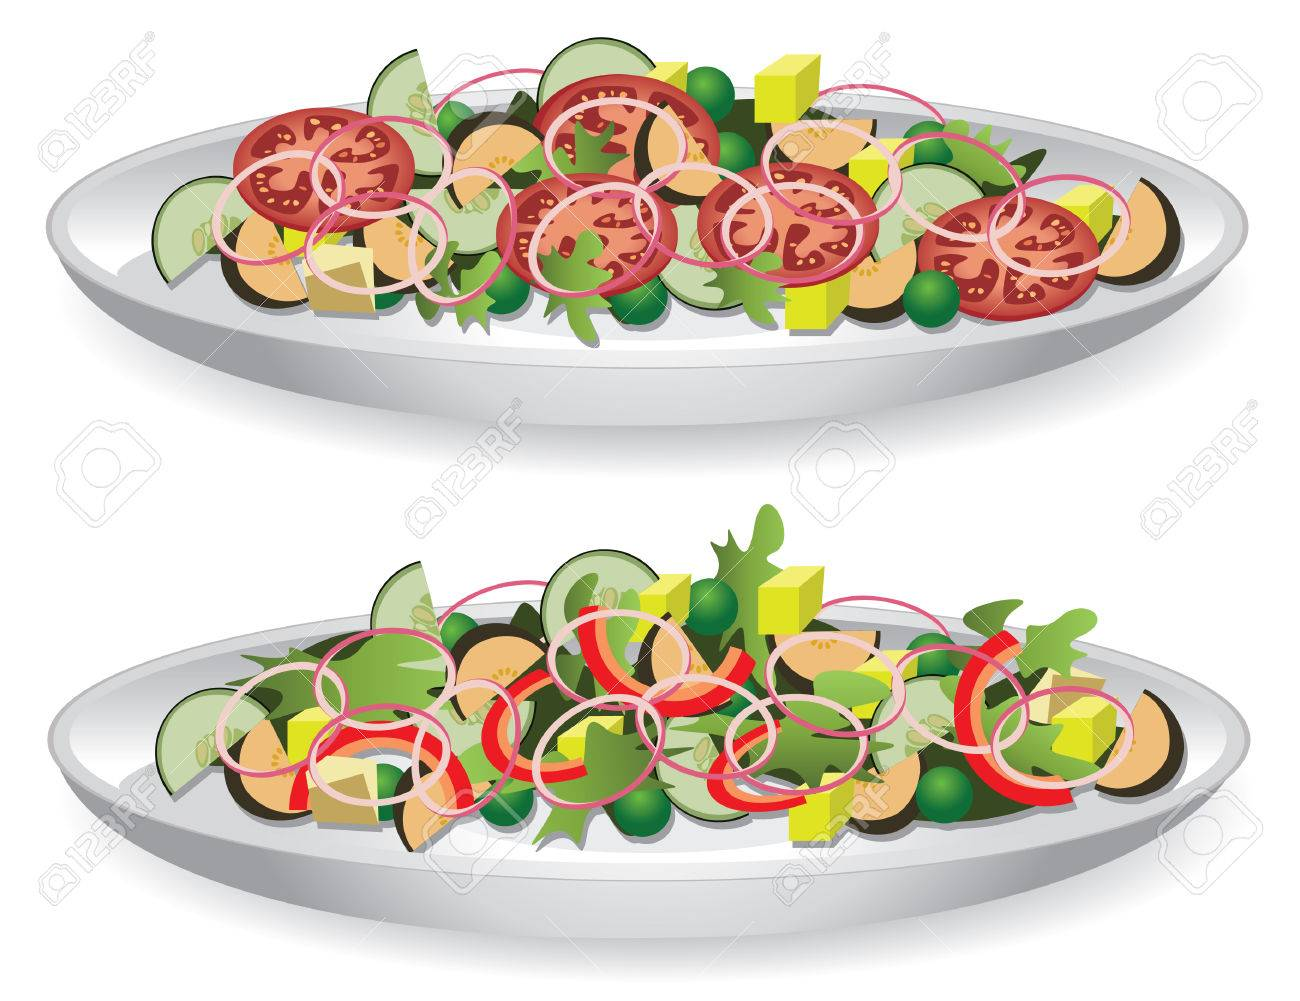 vector illustration of a delicious salad Stock Vector - 5693064